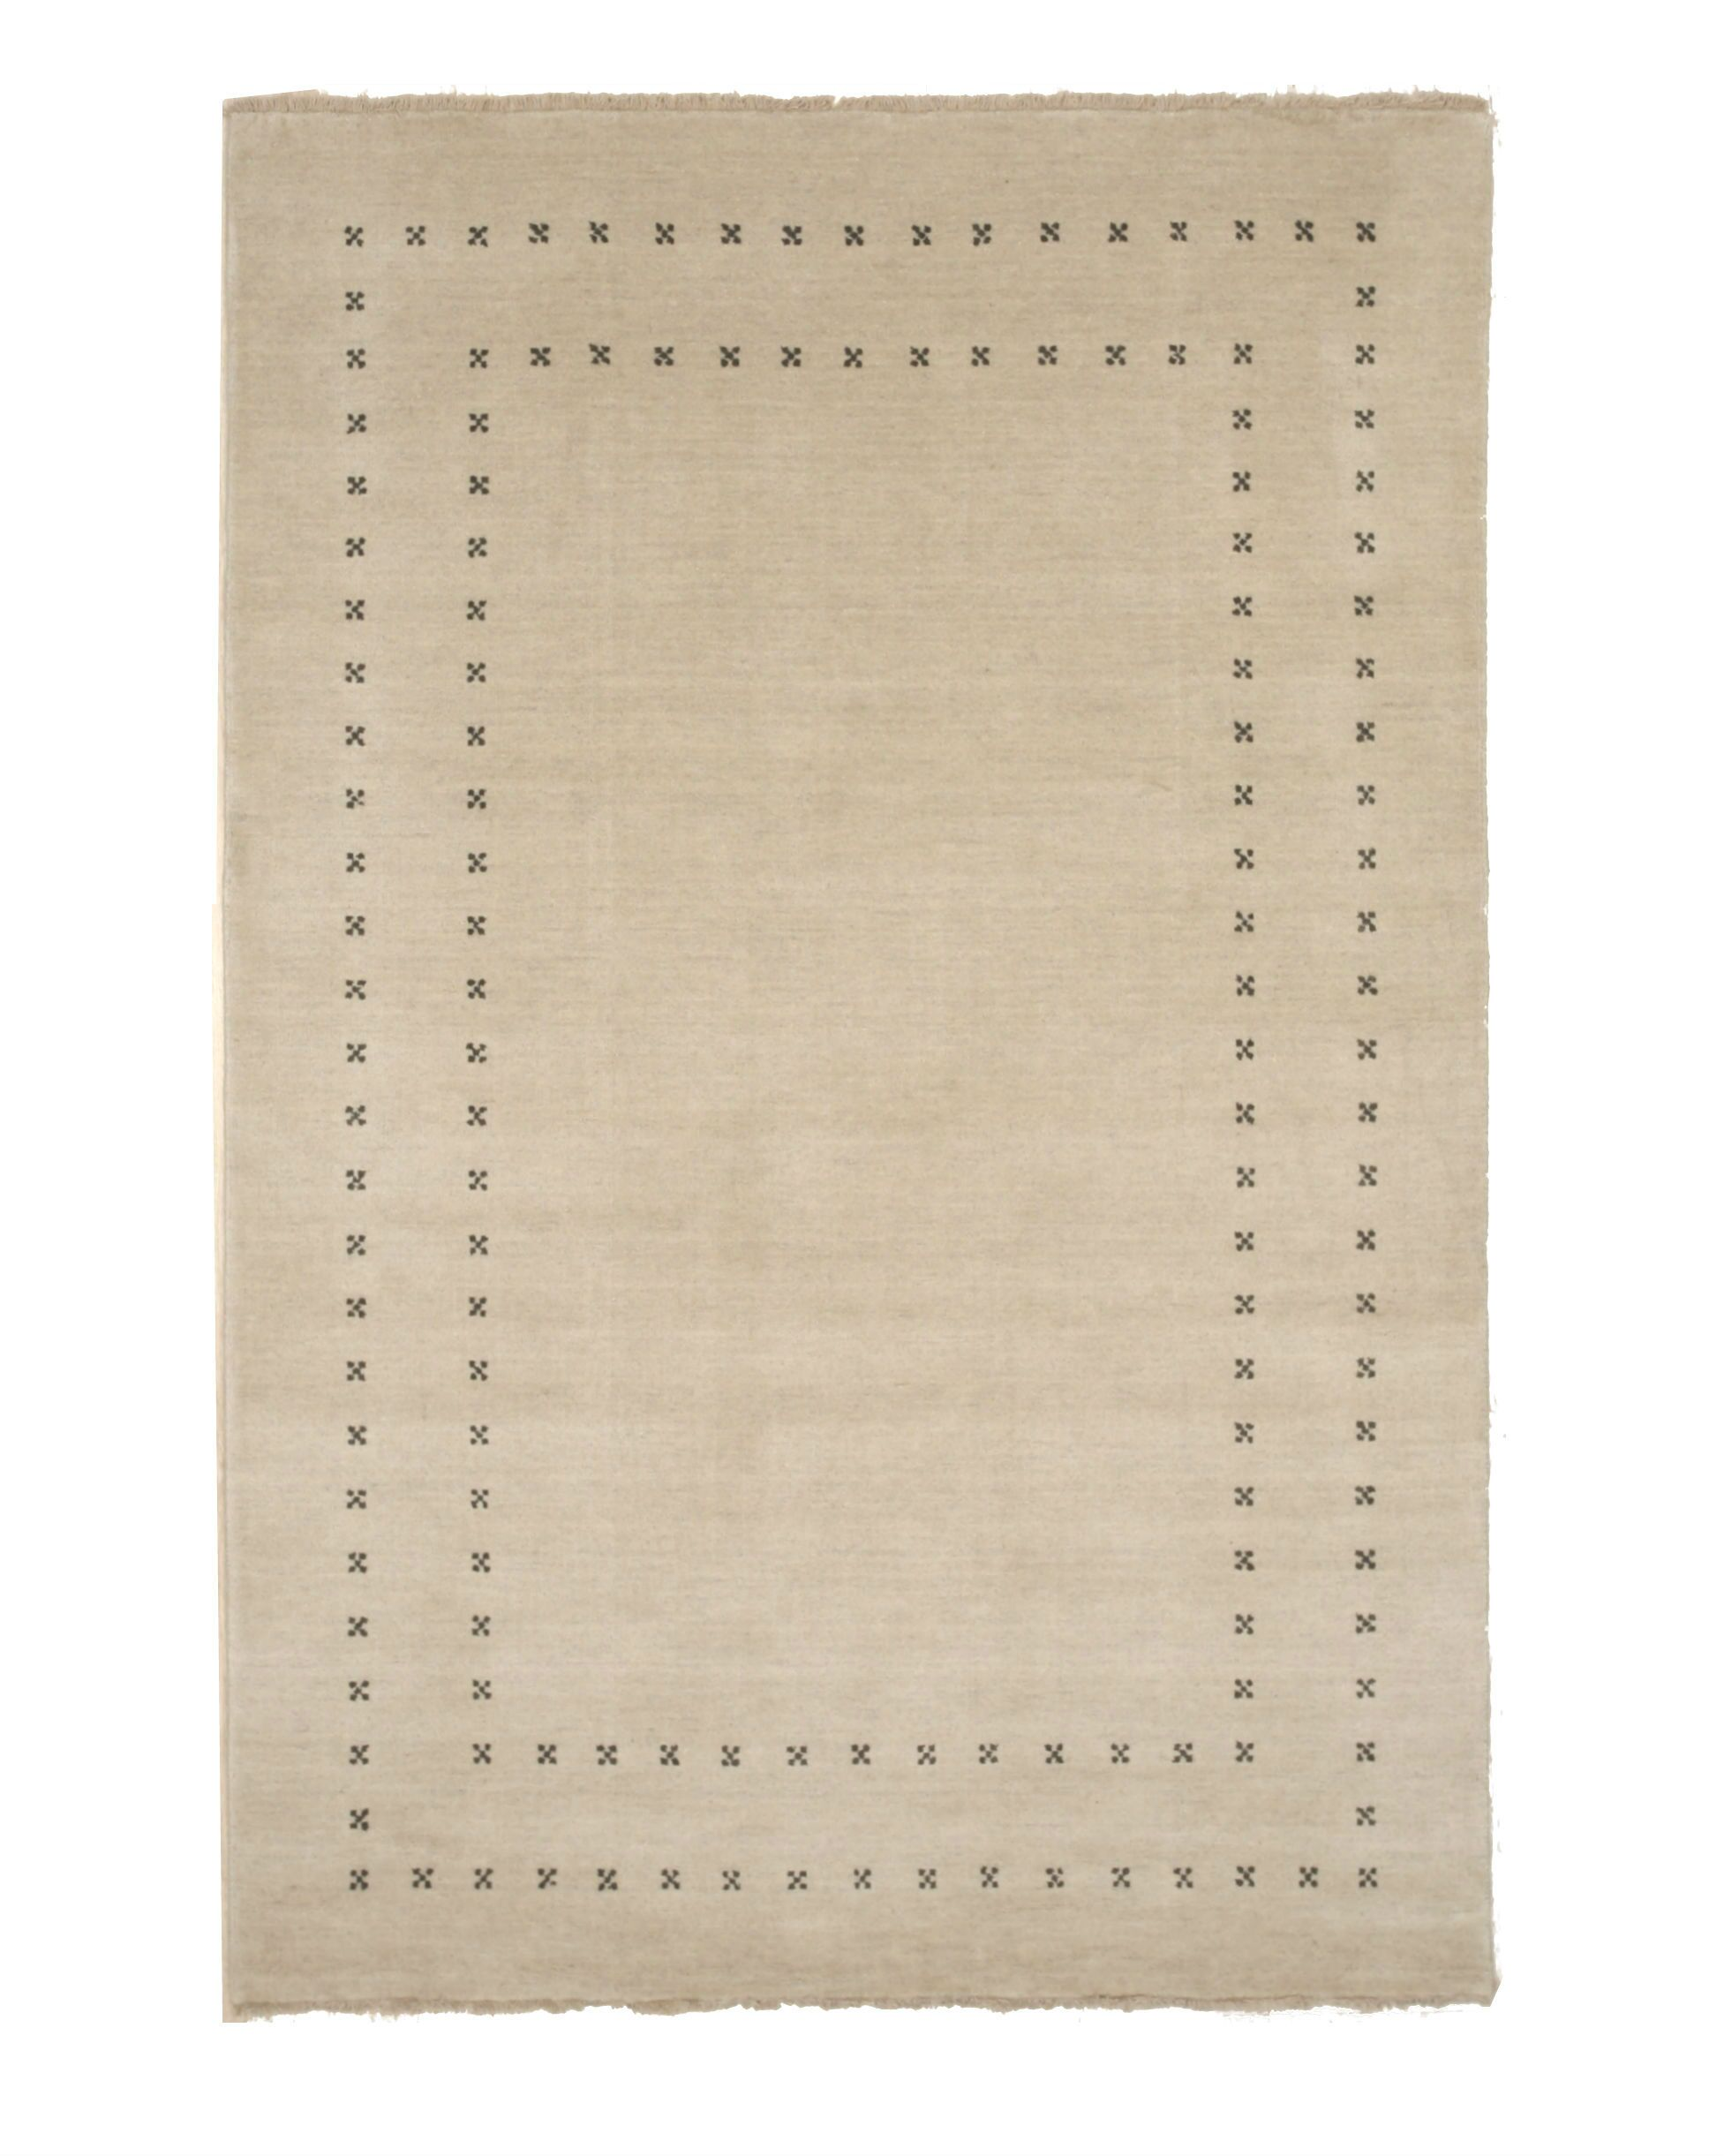 Dreher Transitional Solid Hand-Woven Wool Beige Area Rug Rug Size: Rectangle 10' x 14'